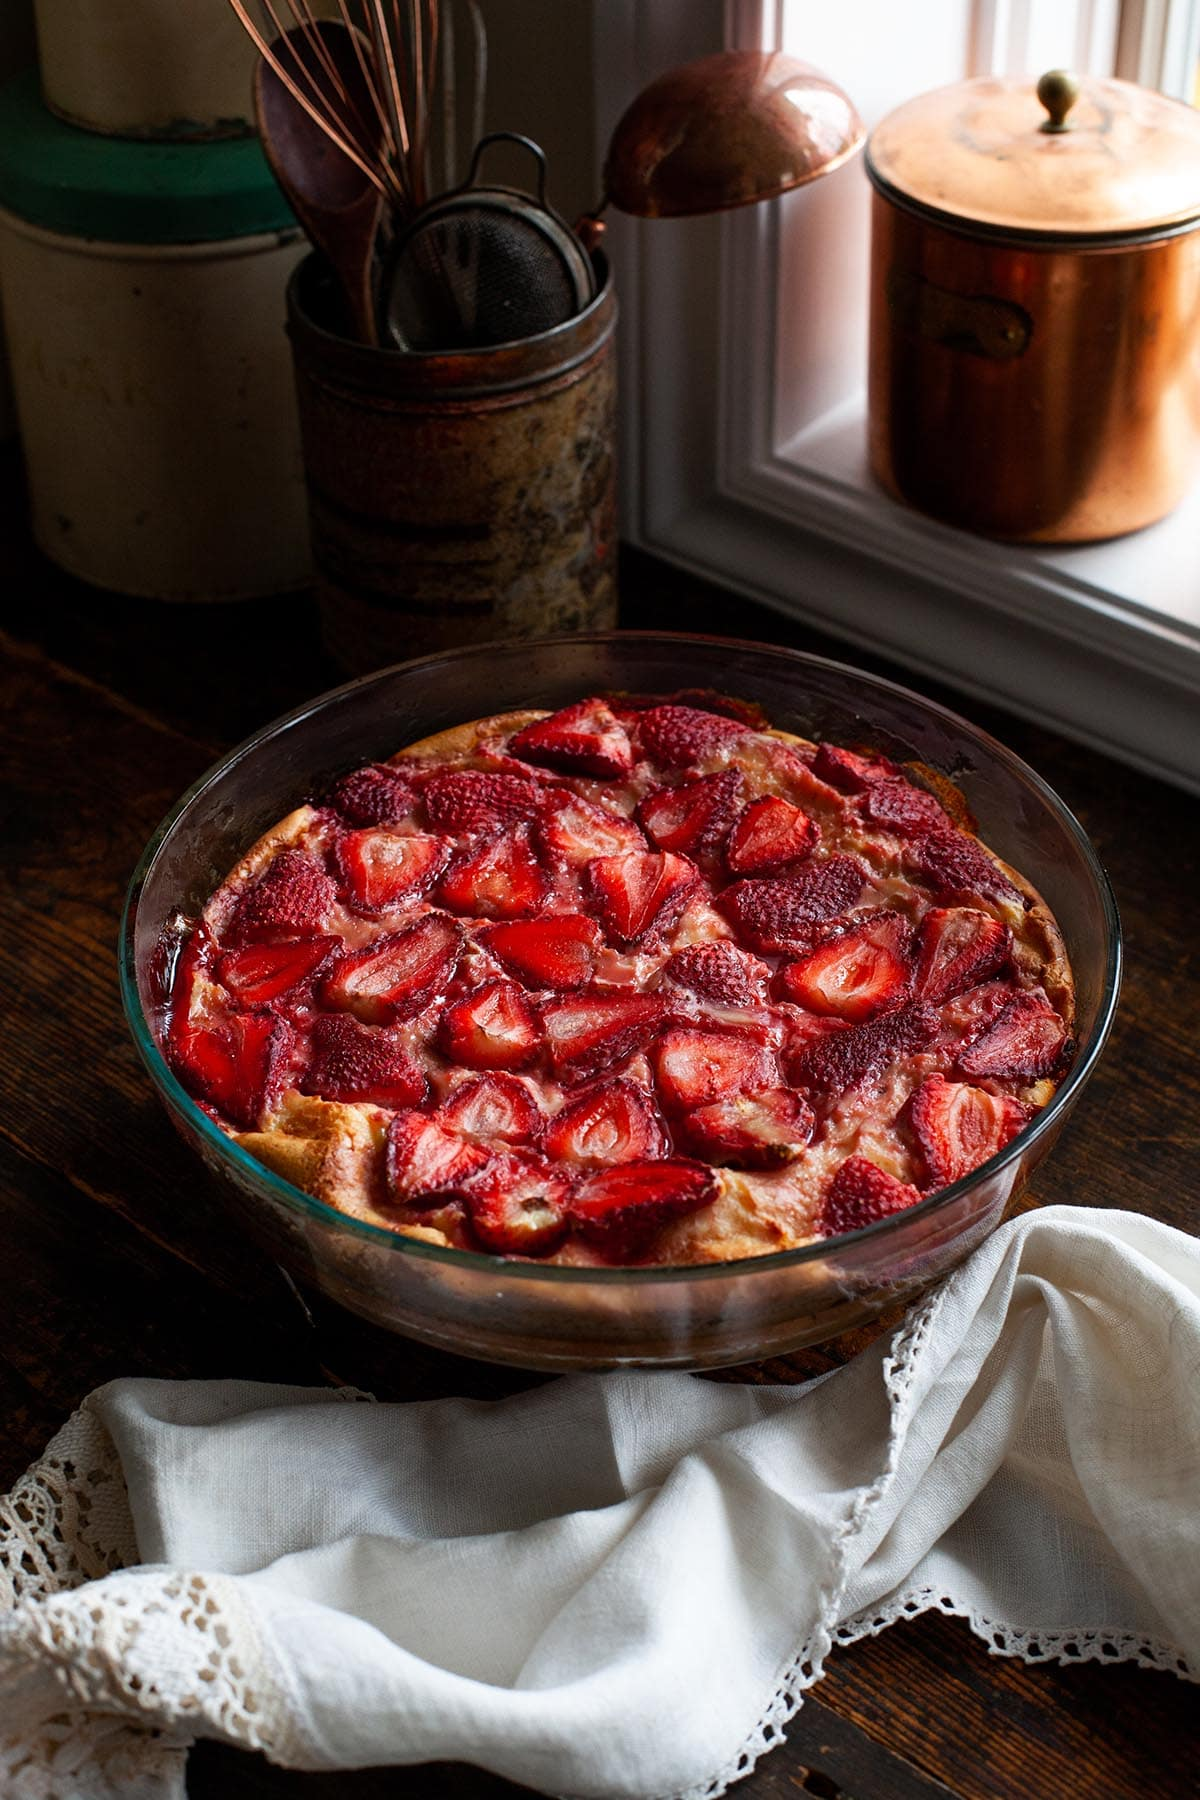 A whole strawberry clafoutis cooling on a table near a window.